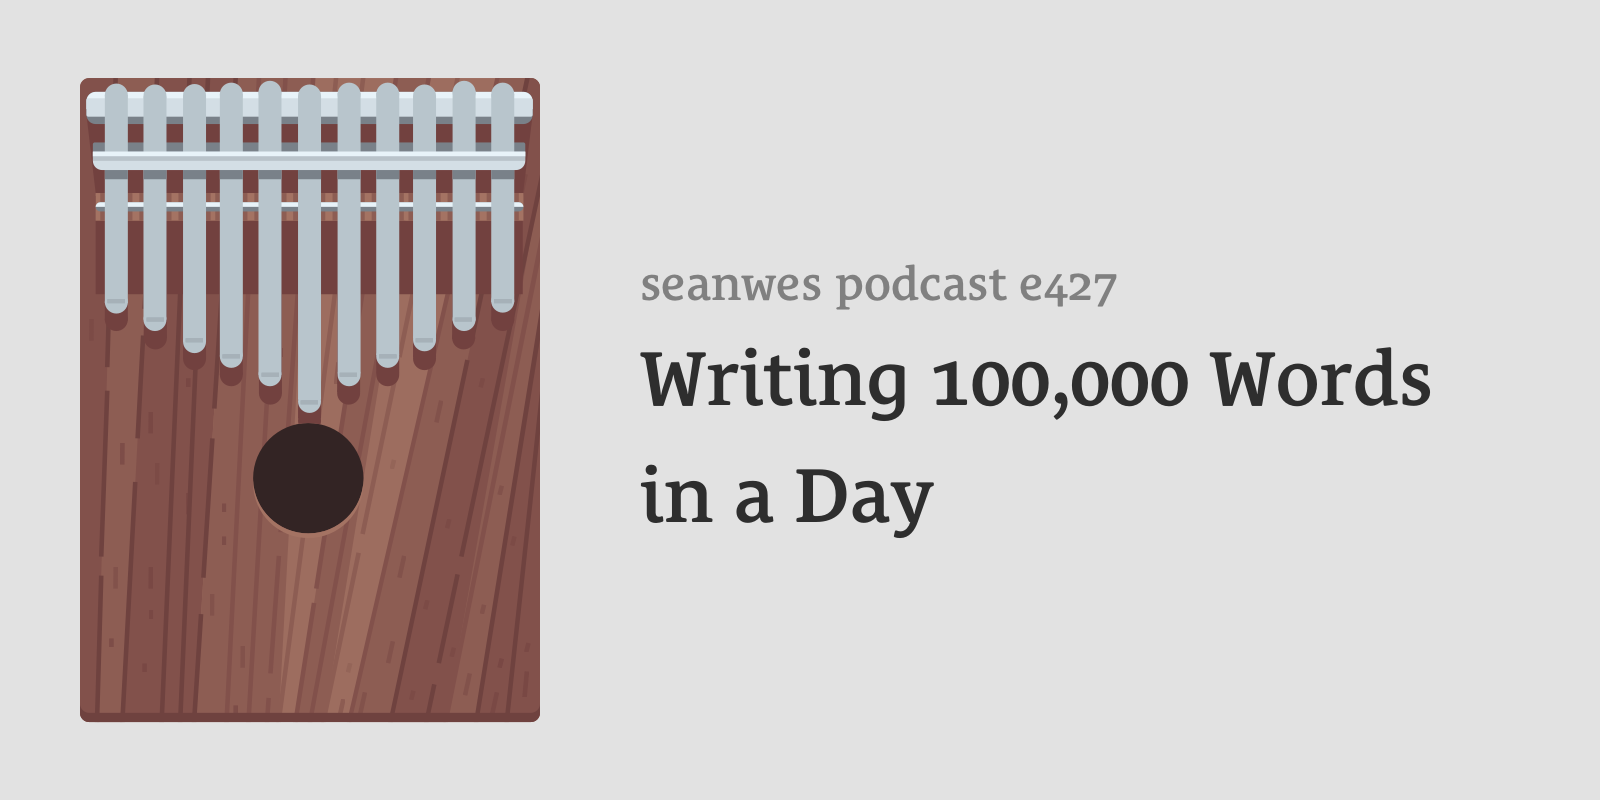 Writing 100,000 Words in a Day